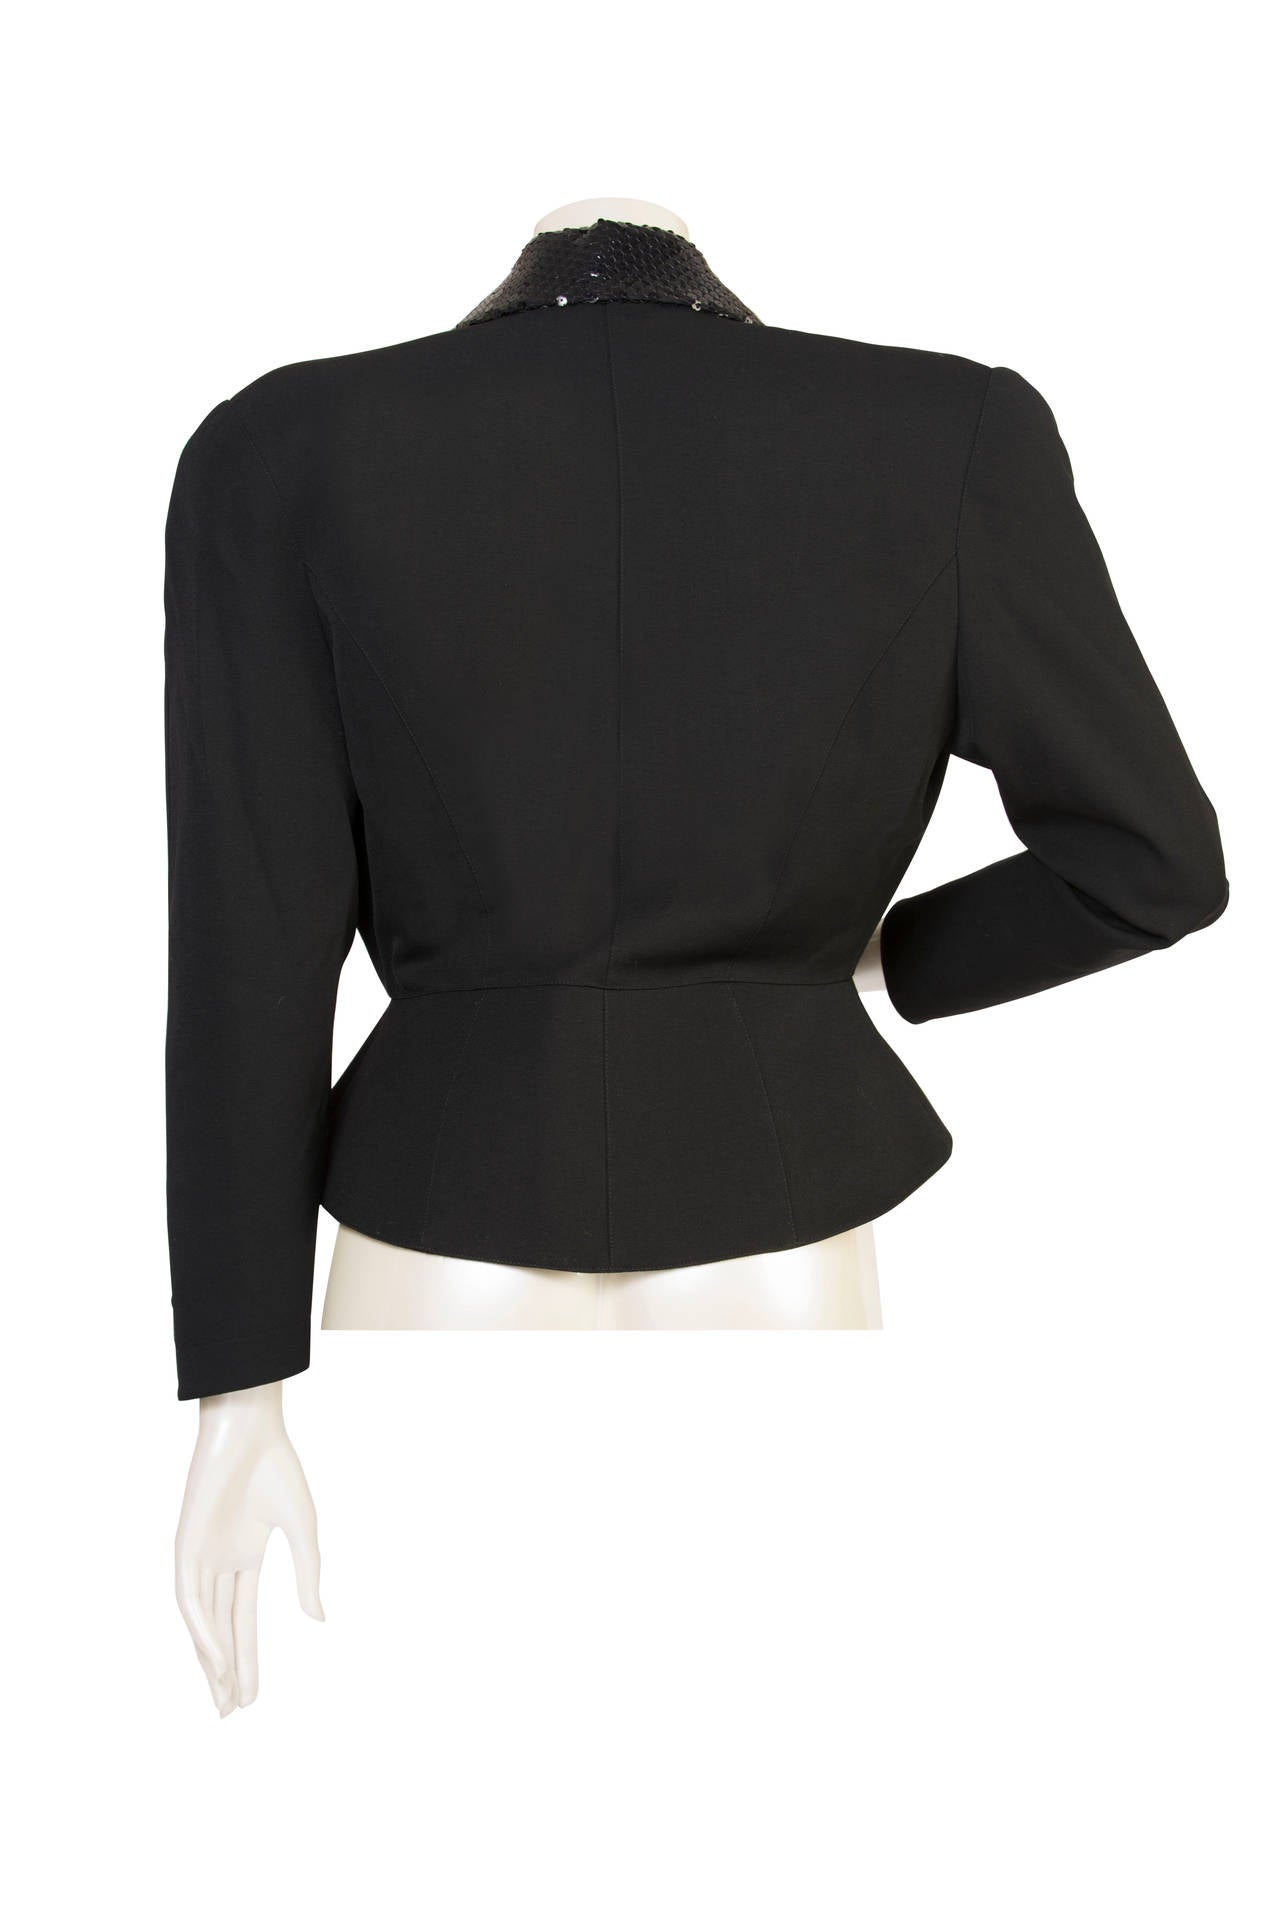 Thierry mugler clothing online